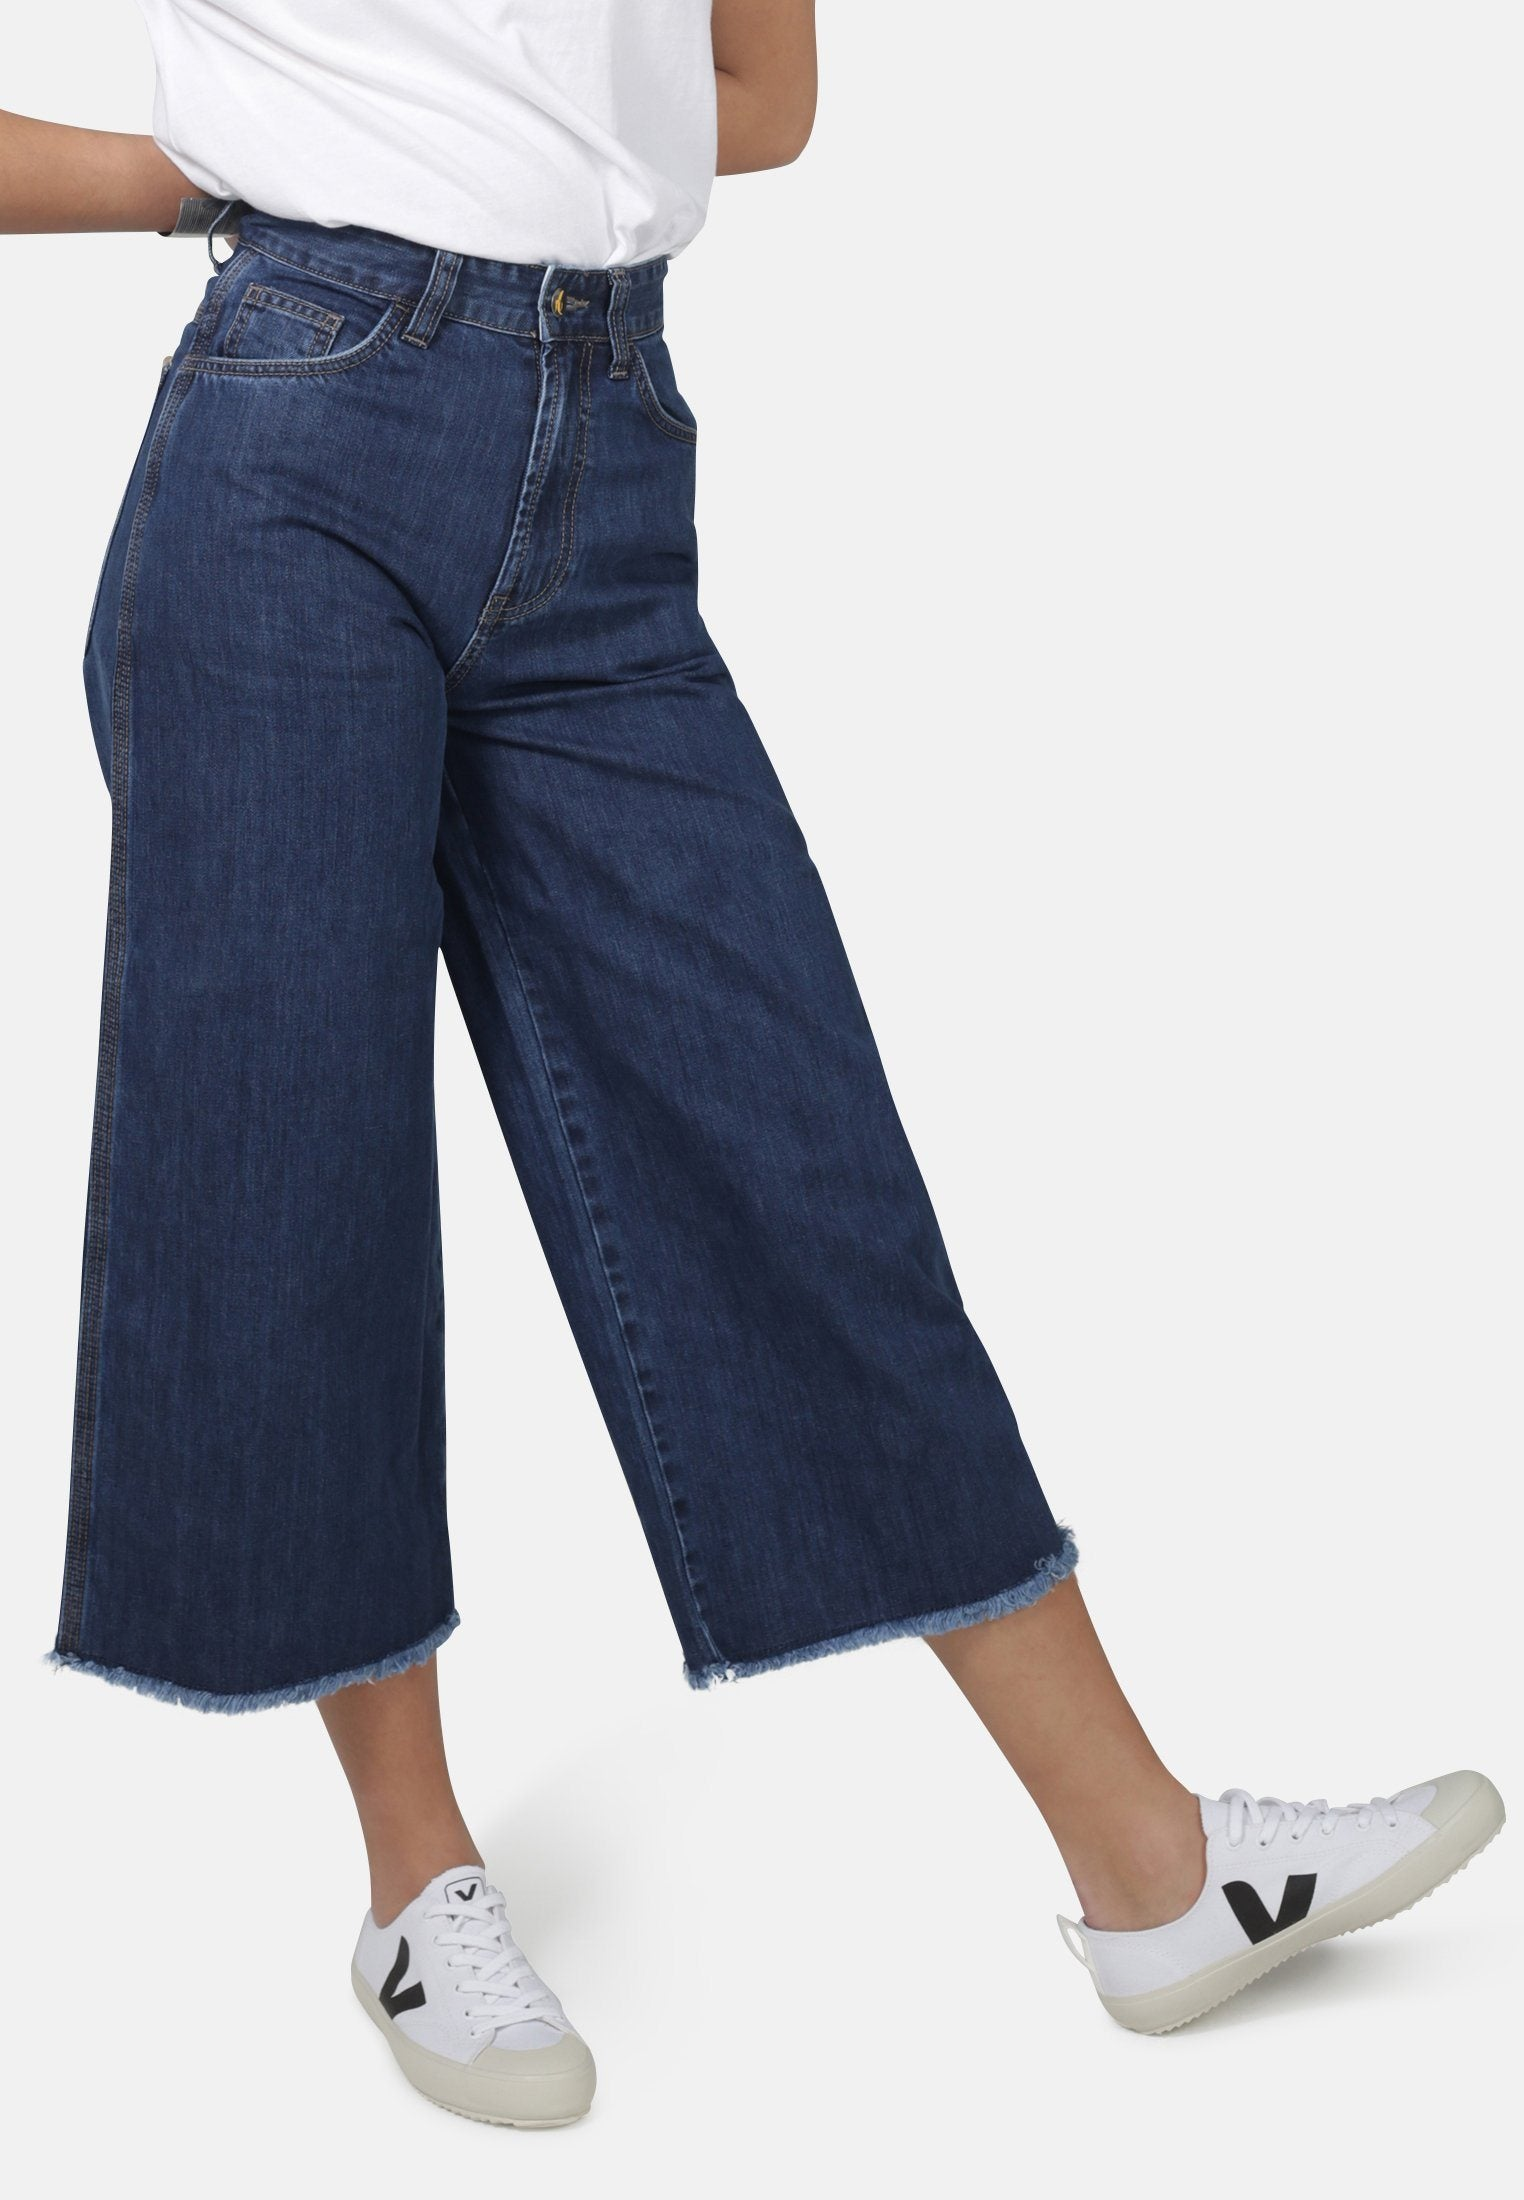 Blue Dark Denim Crop Flare Jeans | 100% Organic Cotton | by MONKEE Genes